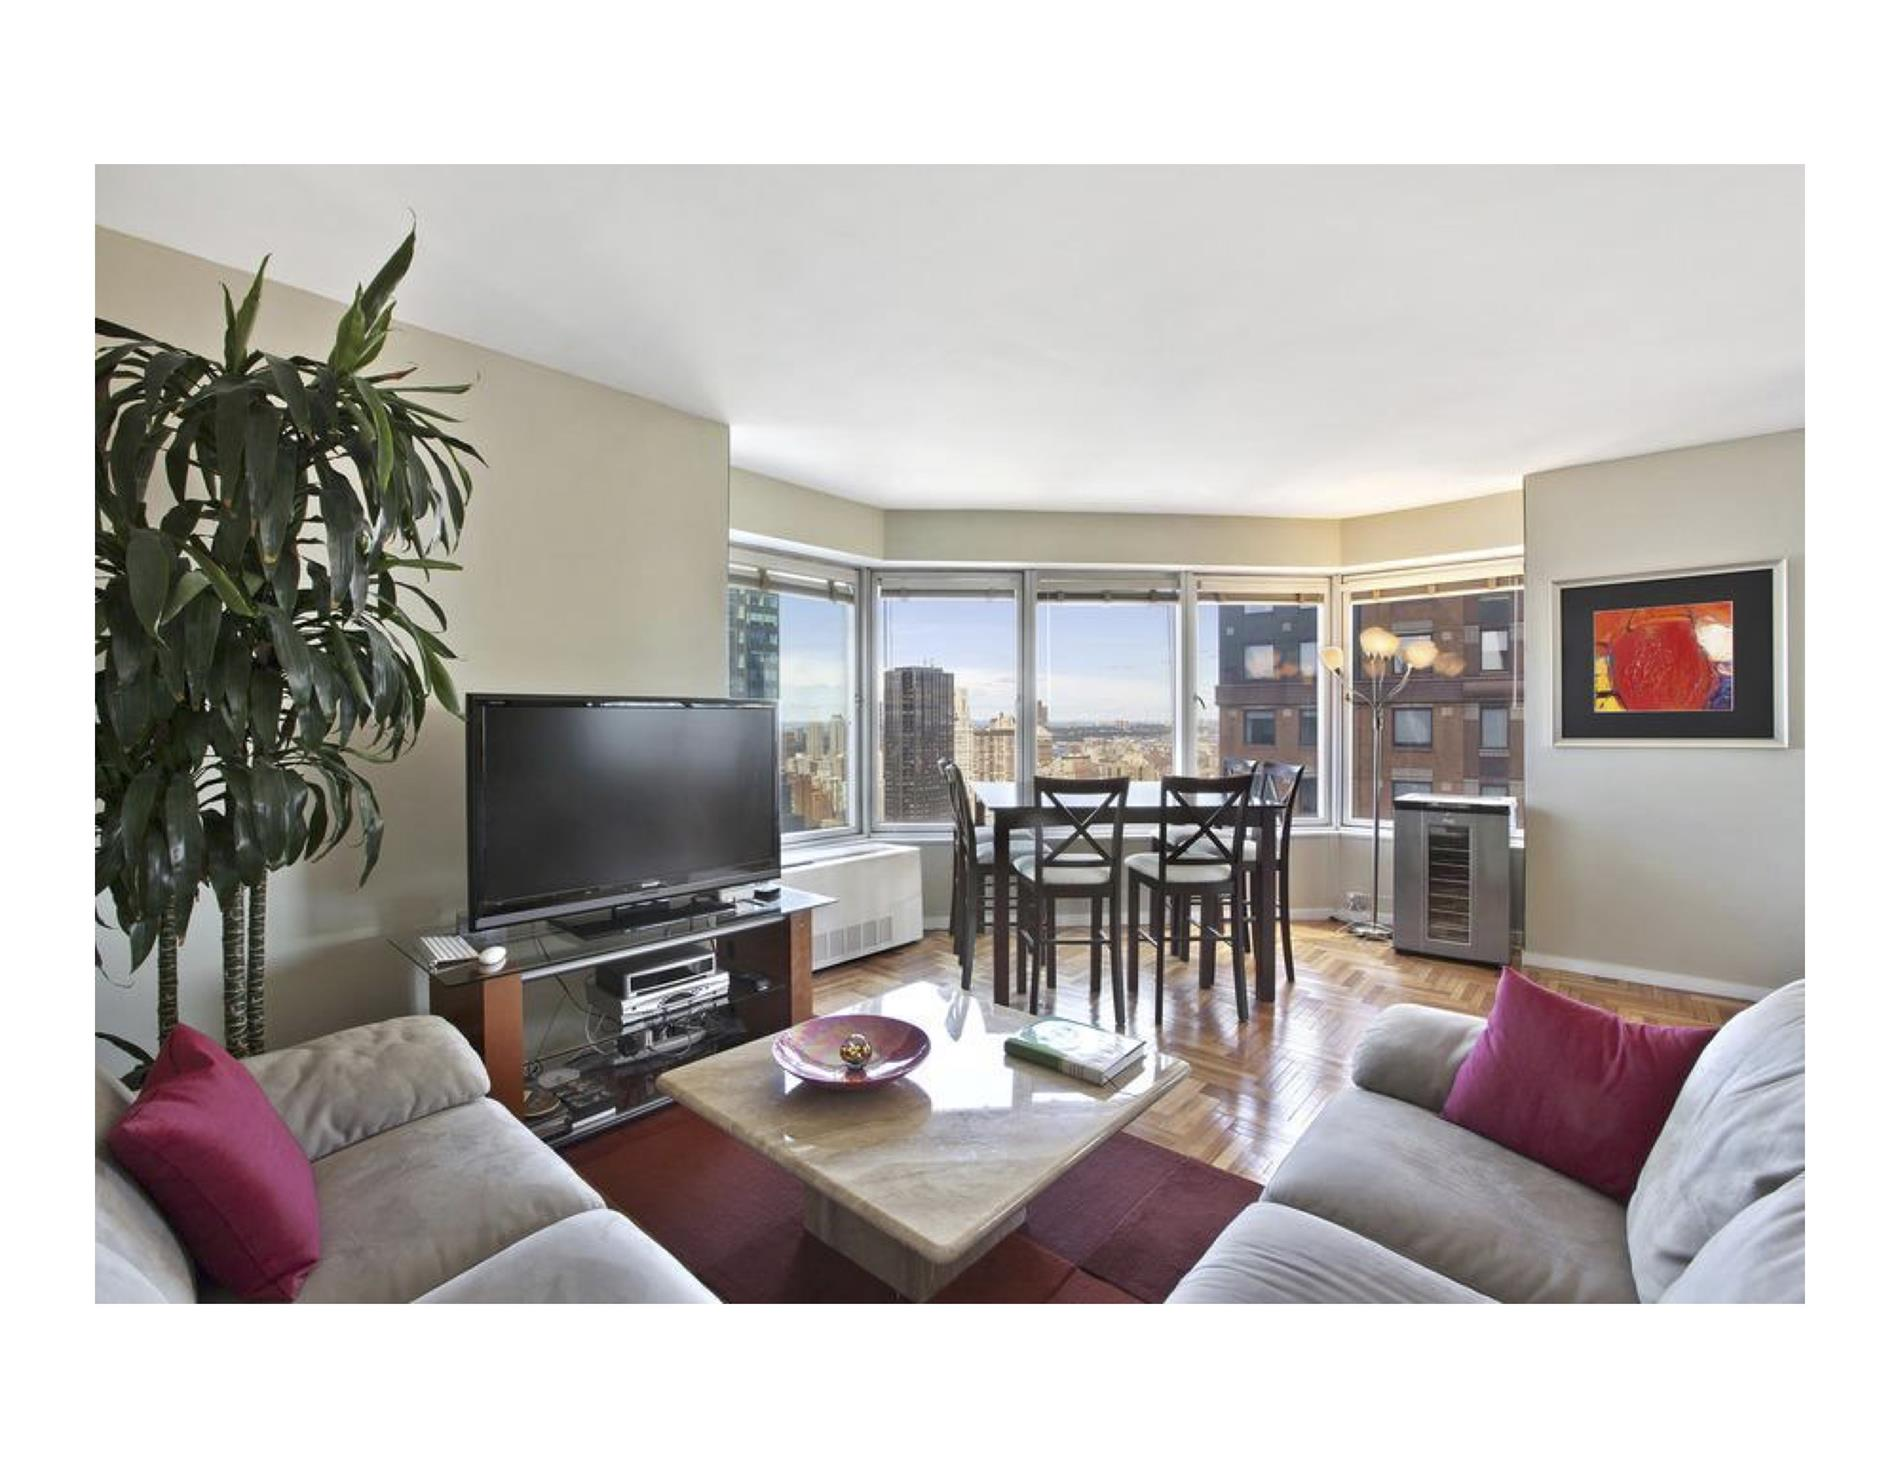 Ideal midtown Manhattan residence, just three short blocks from Central Park.  Lots of sun with North and West views of the city and the Hudson River.  Full-service, established condominium featuring health club with pool, party room, meeting room, garage and laundry facilities on every floor.  No pets.